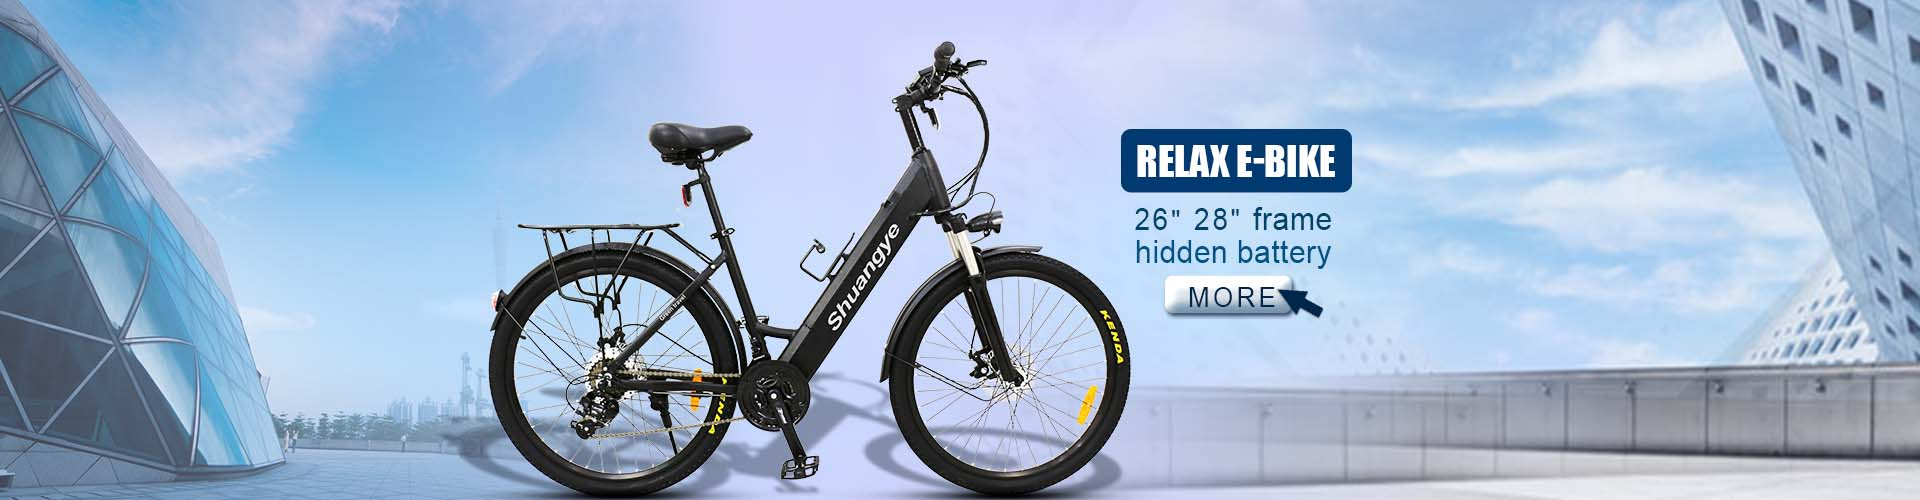 shuangye eletric bike CE EN15194 Certification